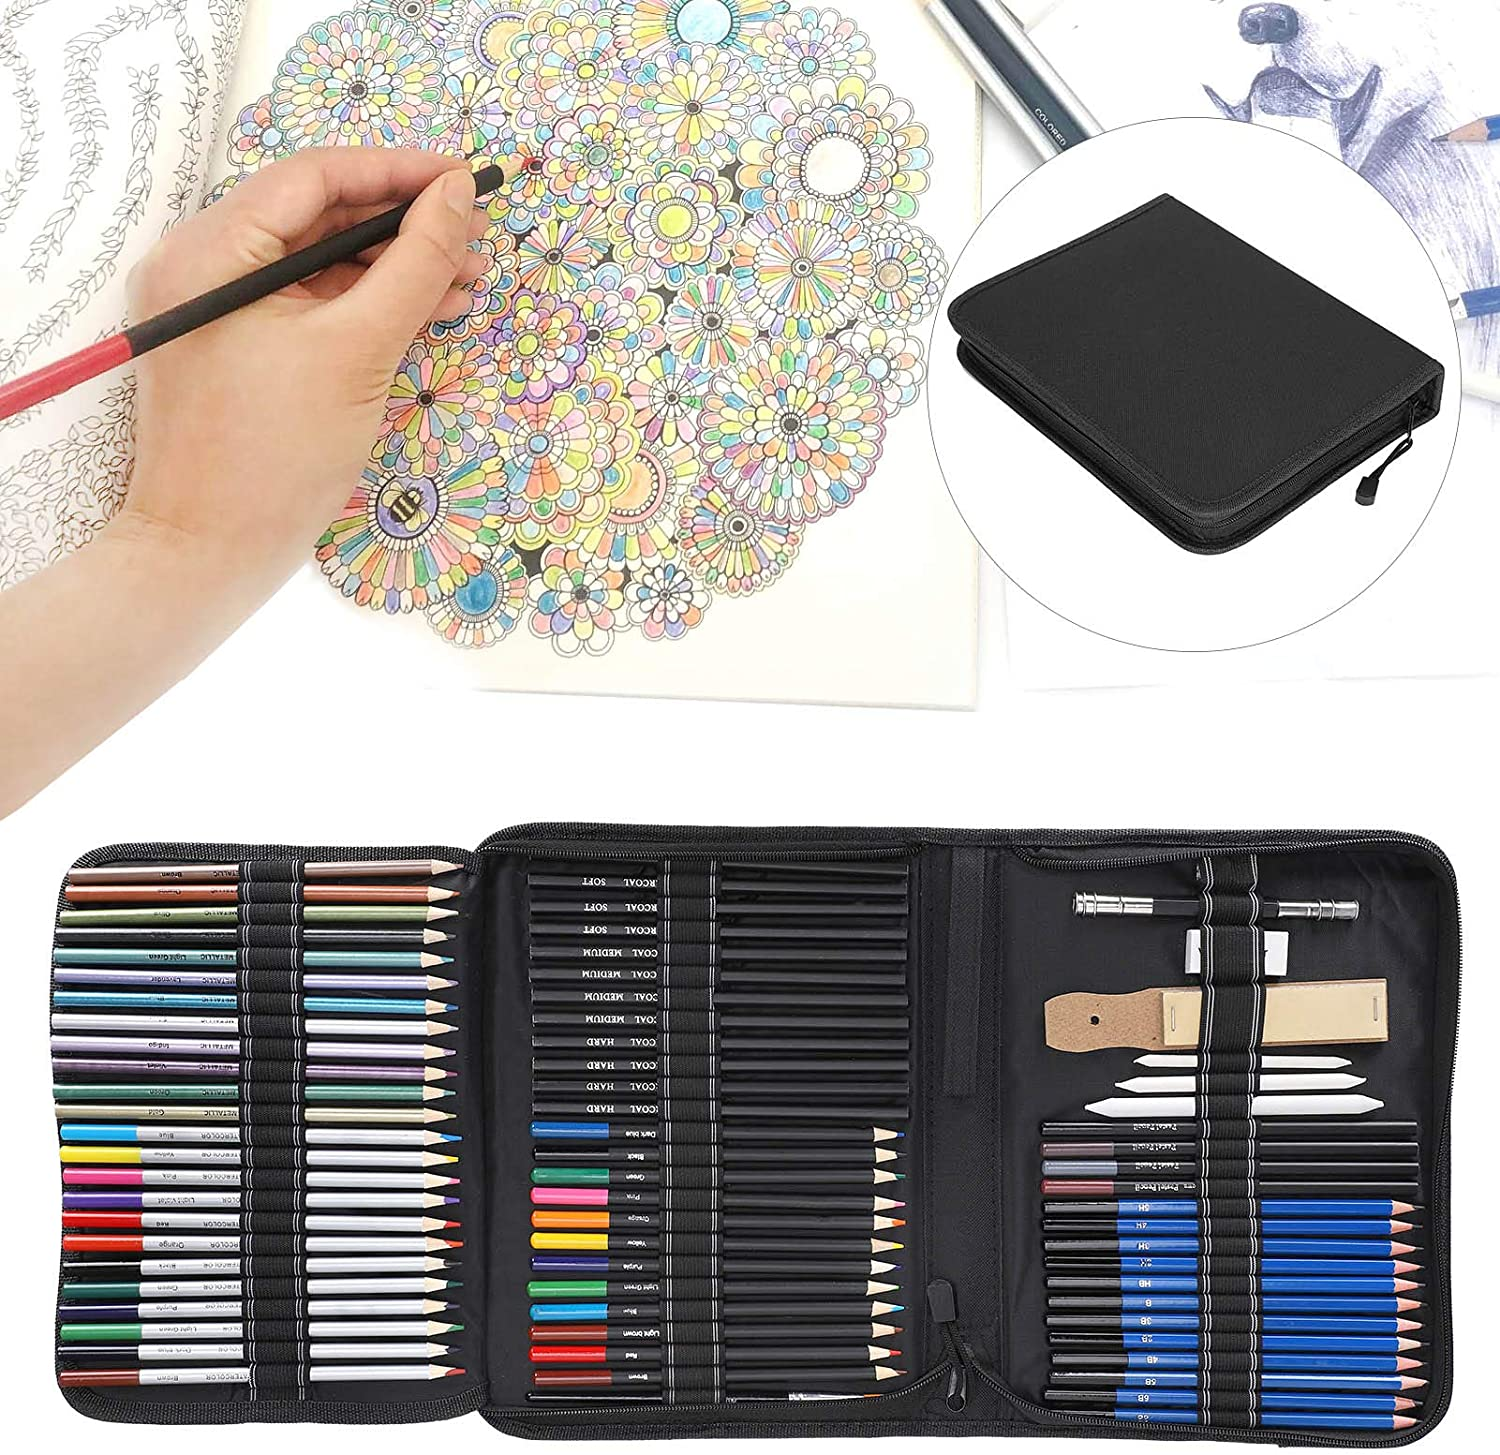 Jacksing Color Pencil Set Sales of SALE items from new works Ranking TOP20 Eco-Friendly